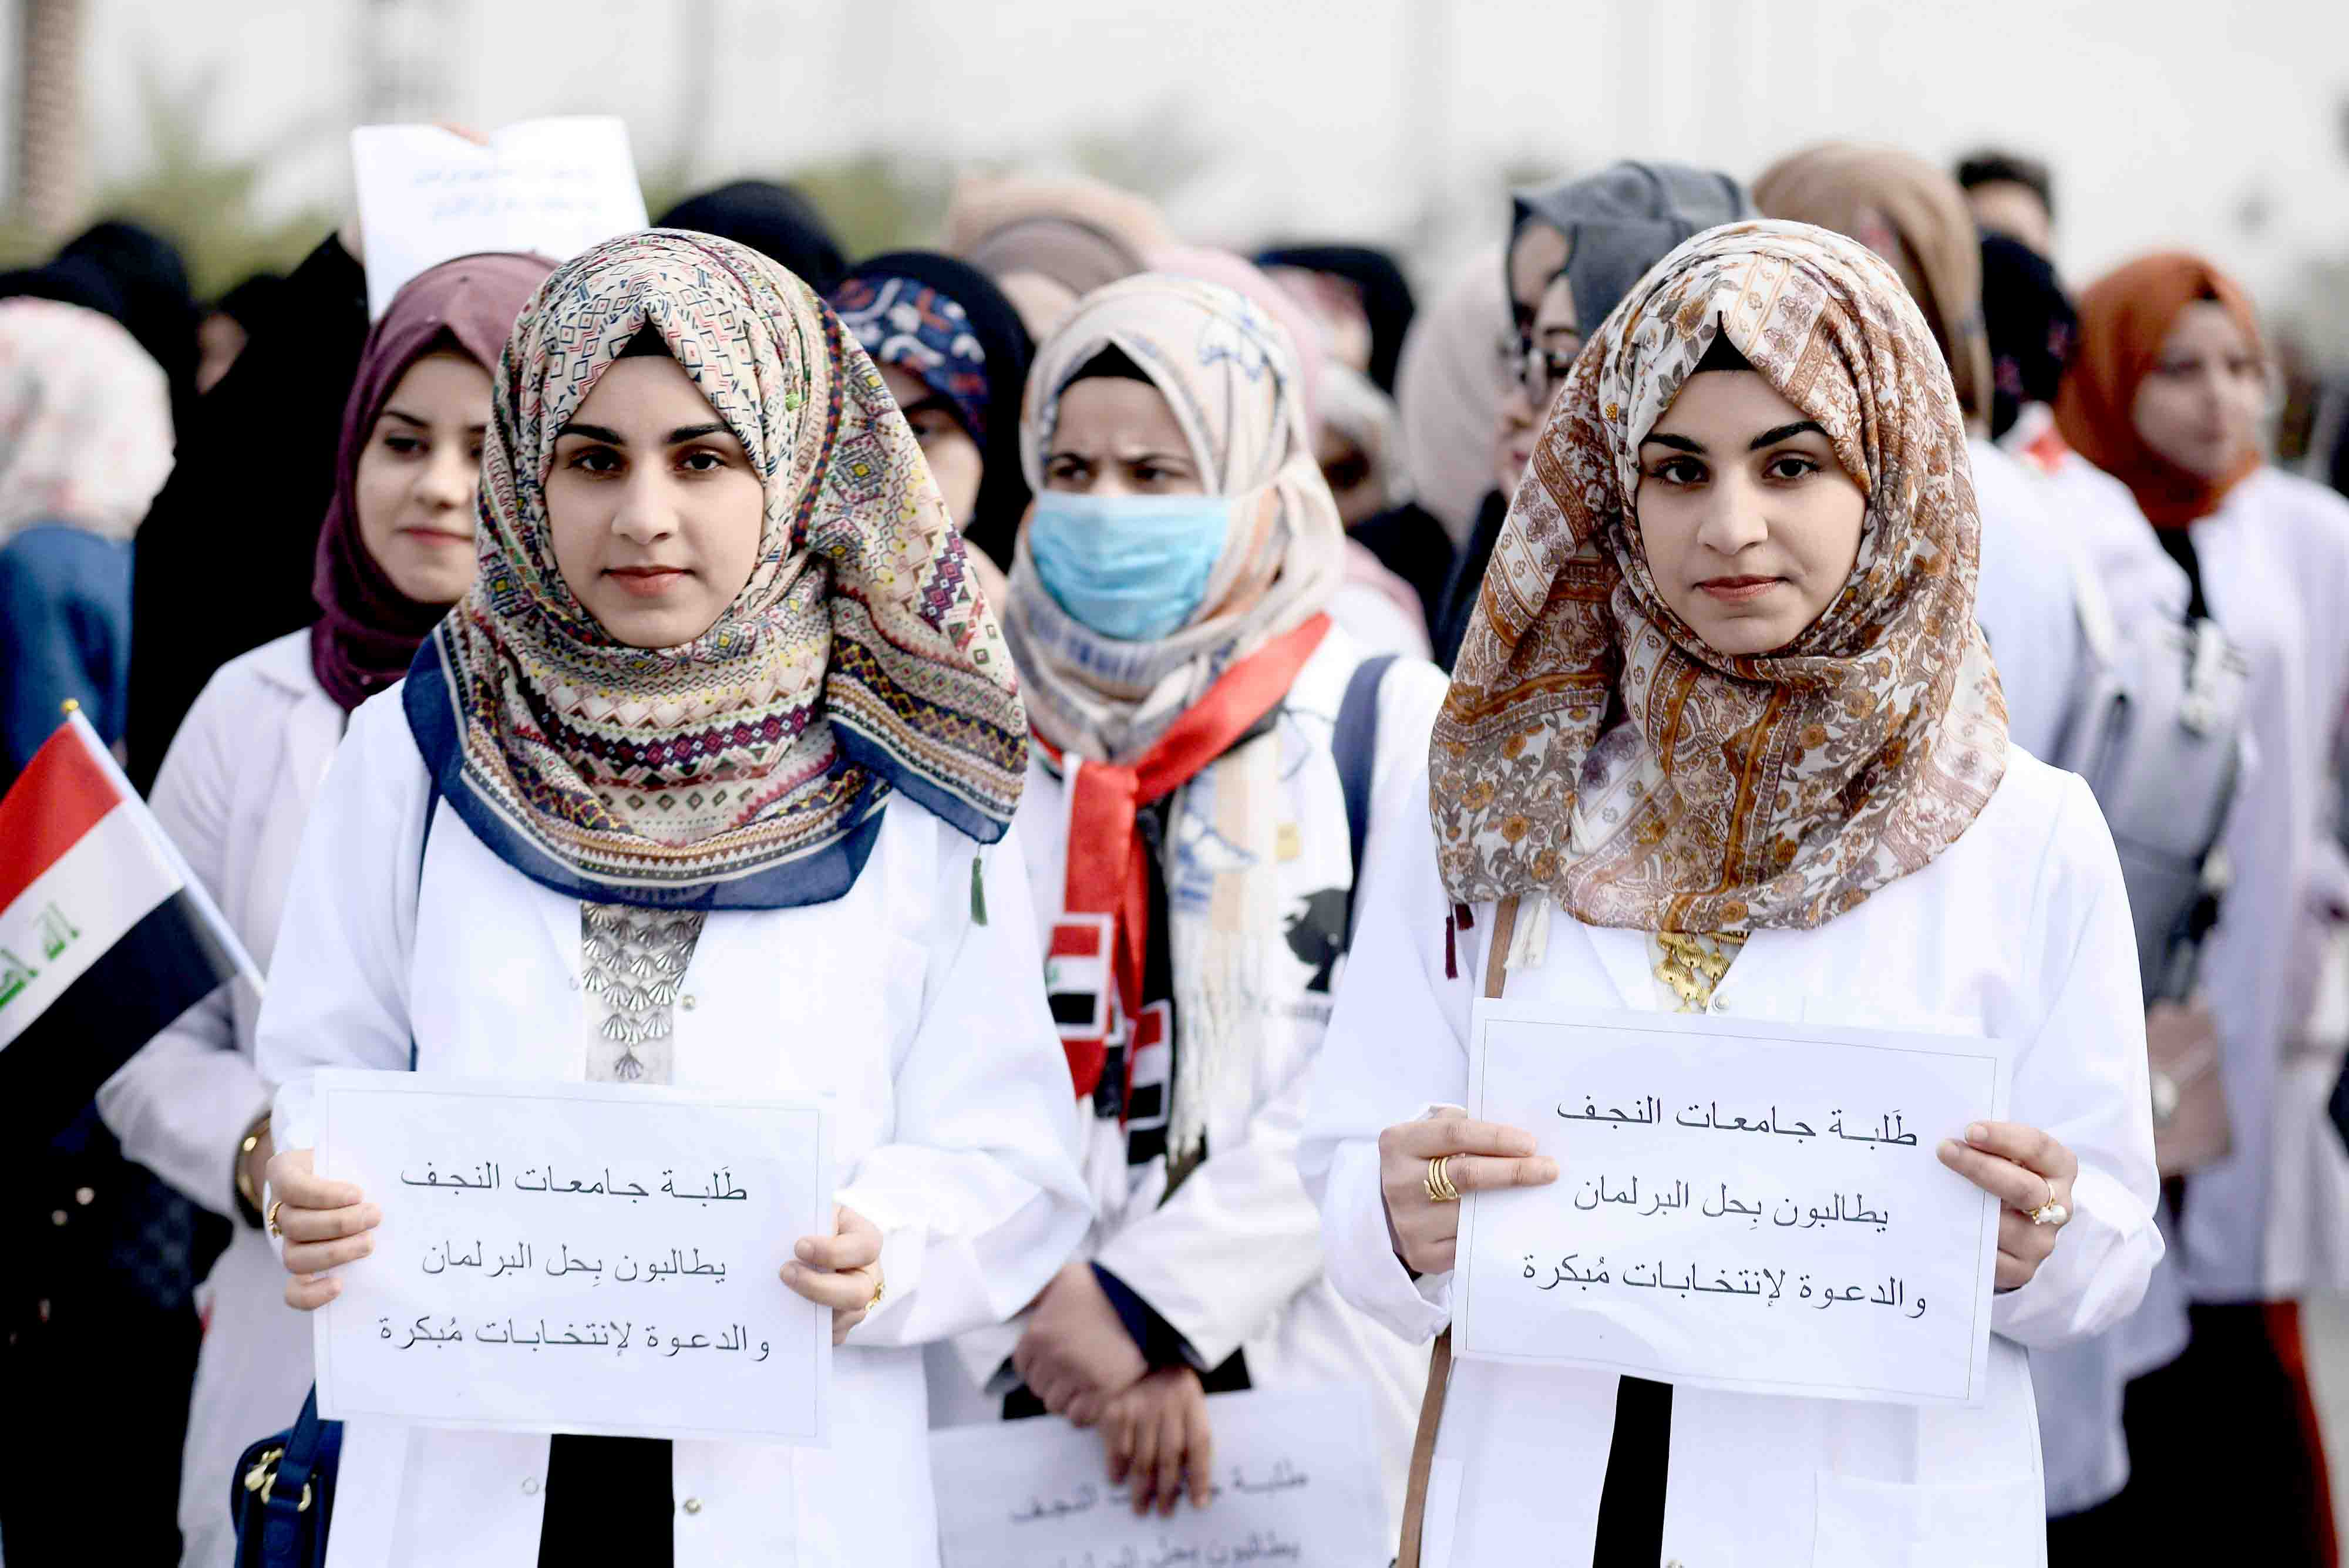 Iraqi university students take part in an anti-government demonstration in the city of Najaf, December 29. (AFP)